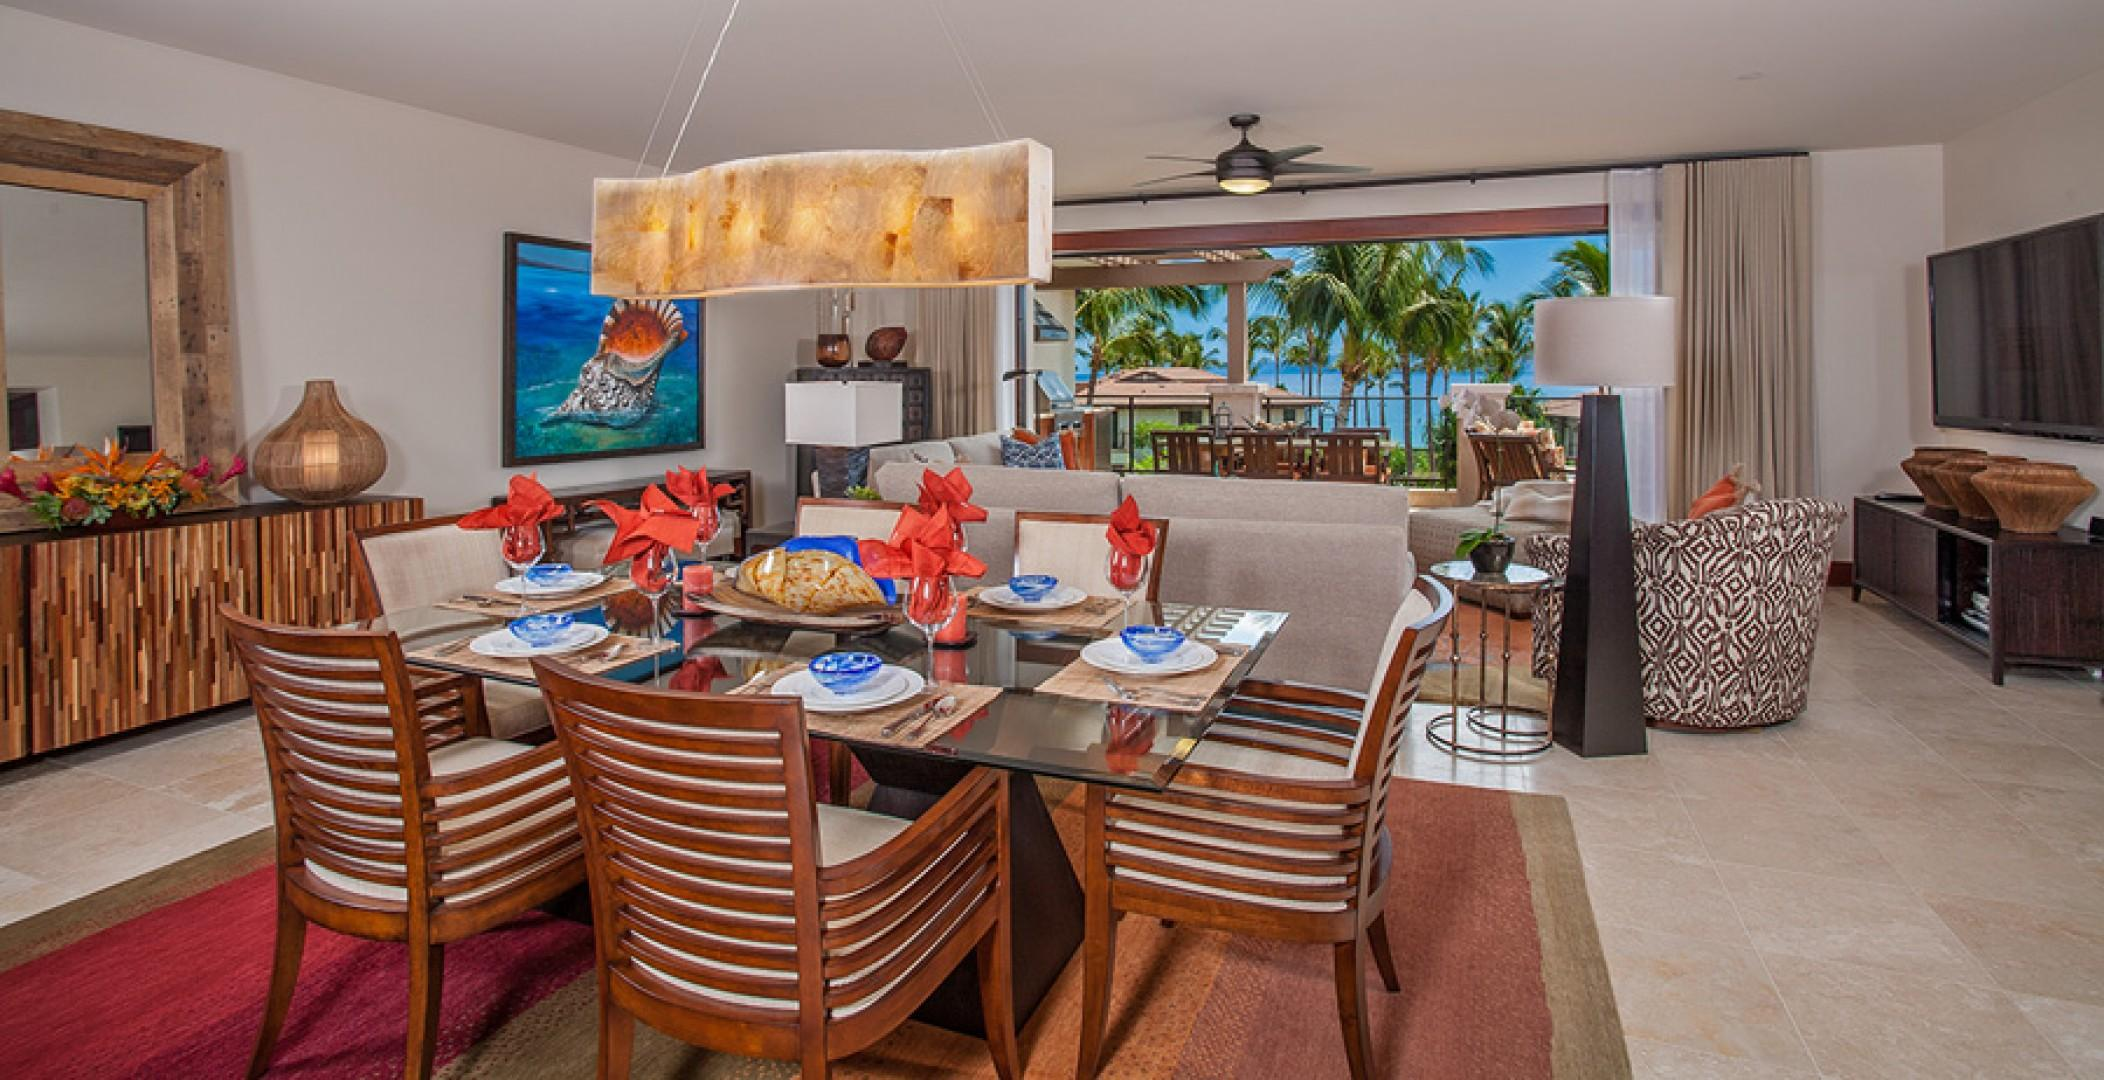 Sun Splash C301 - Indoor Dining For Six. Outdoor Dining for Six. Everything is stocked for entertaining and fine dining within your own villa.